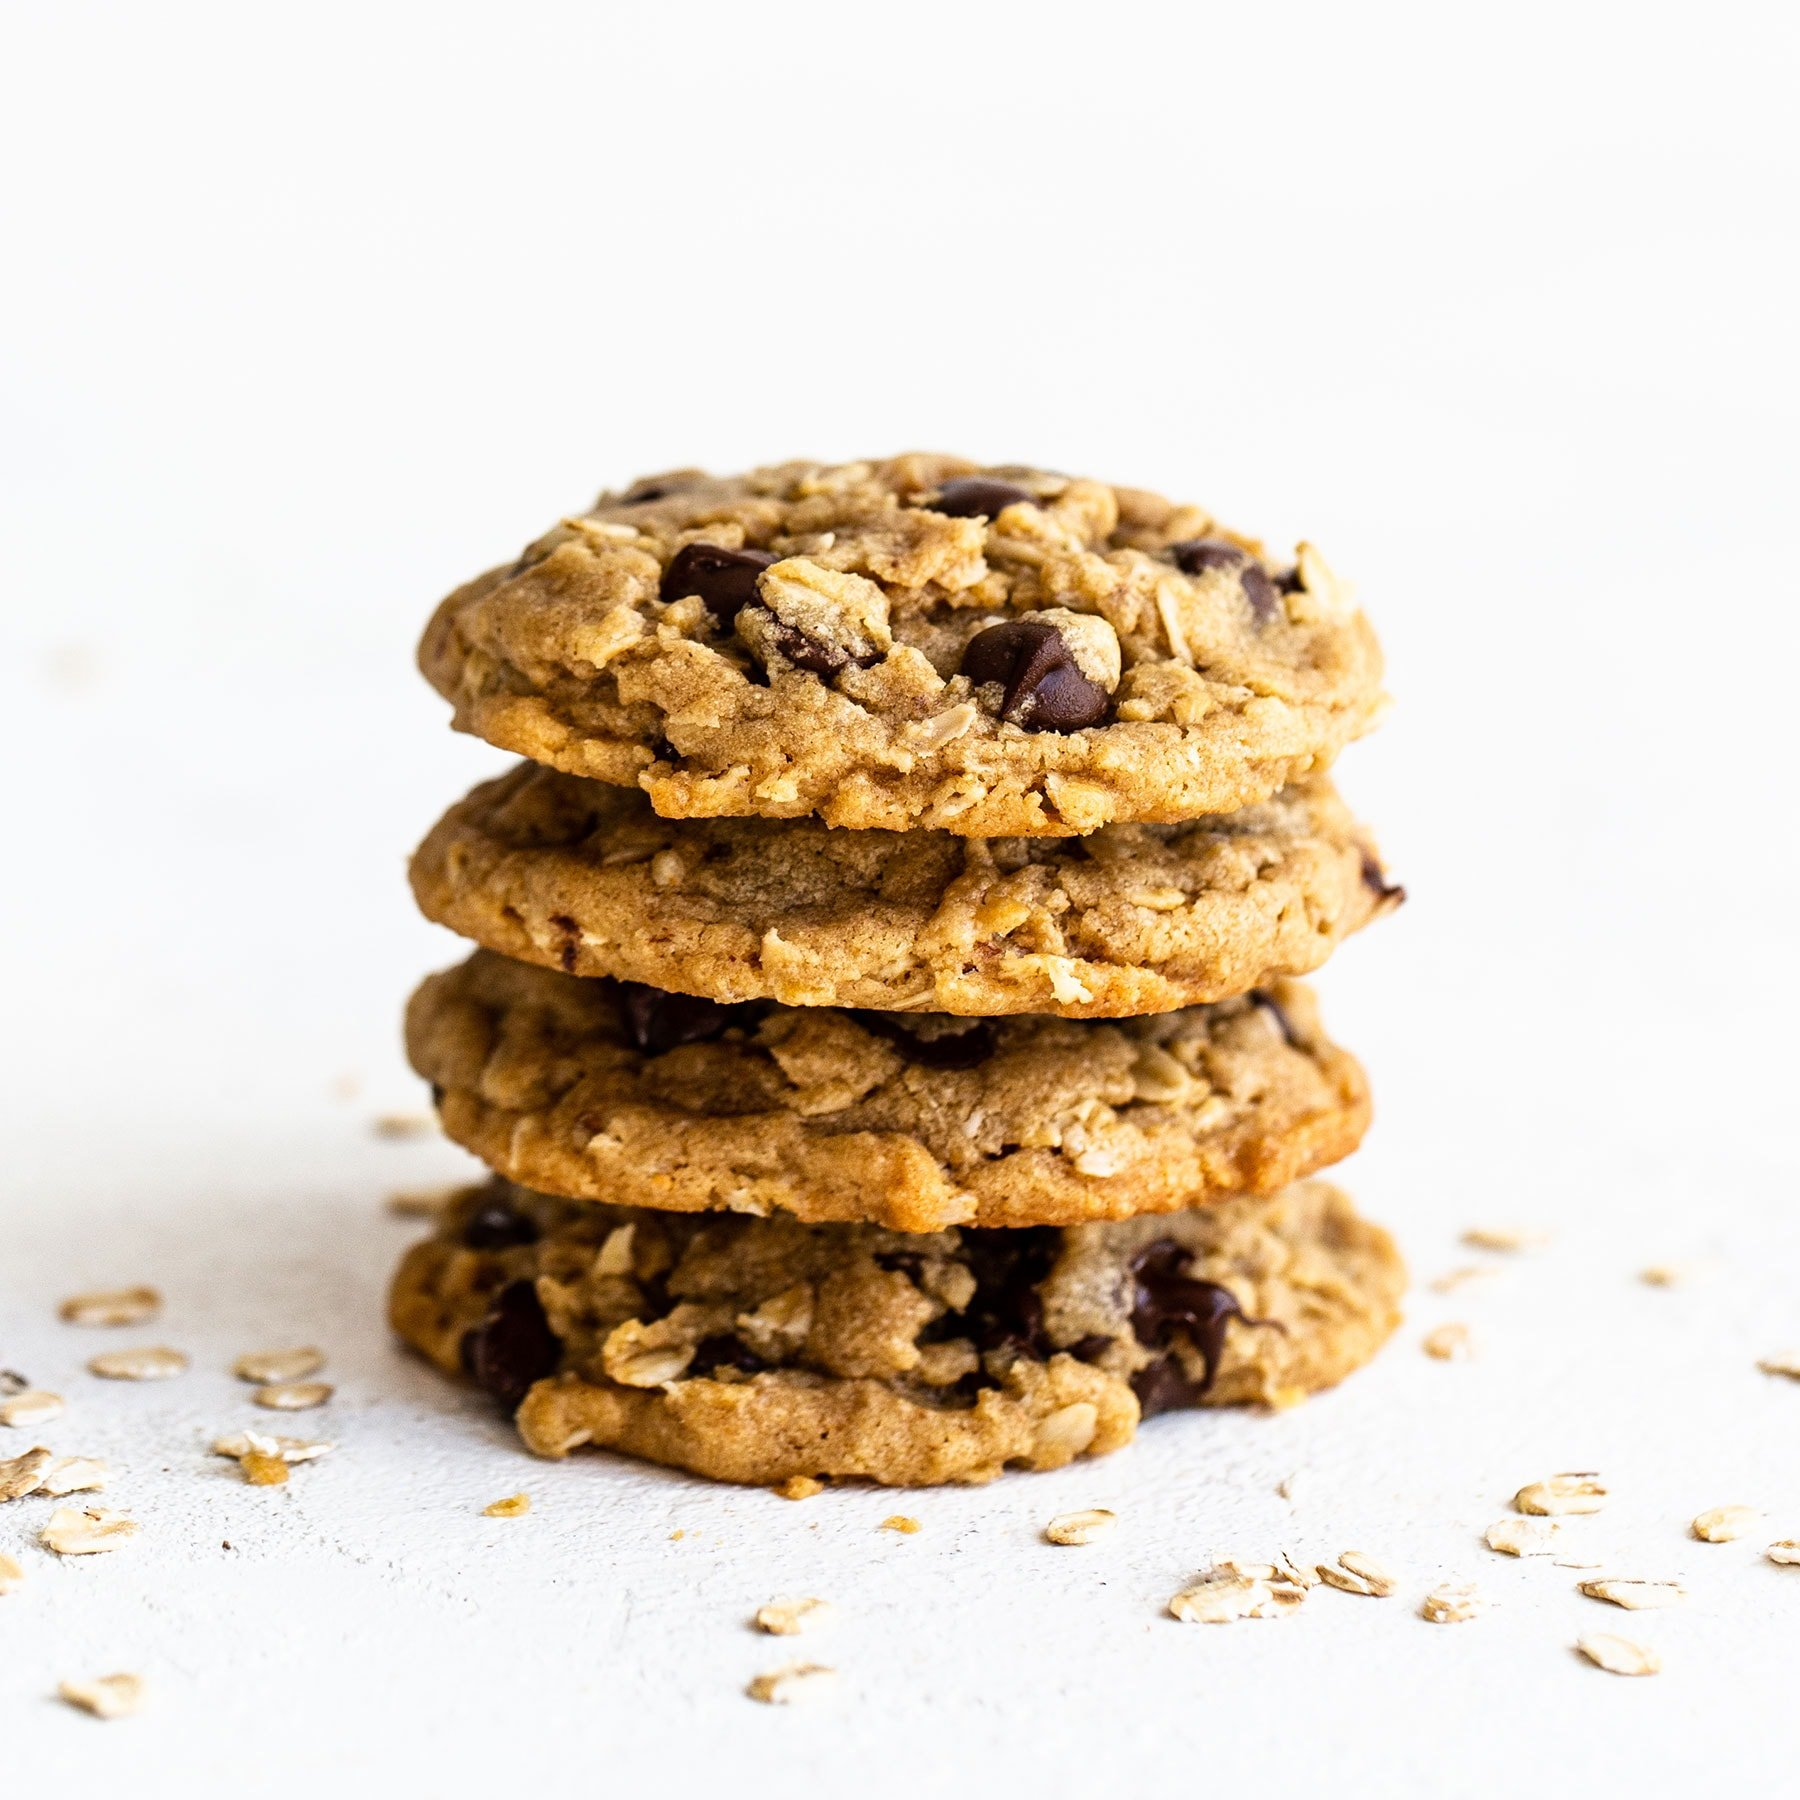 Stack of four peanut butter oatmeal chocolate chip cookies